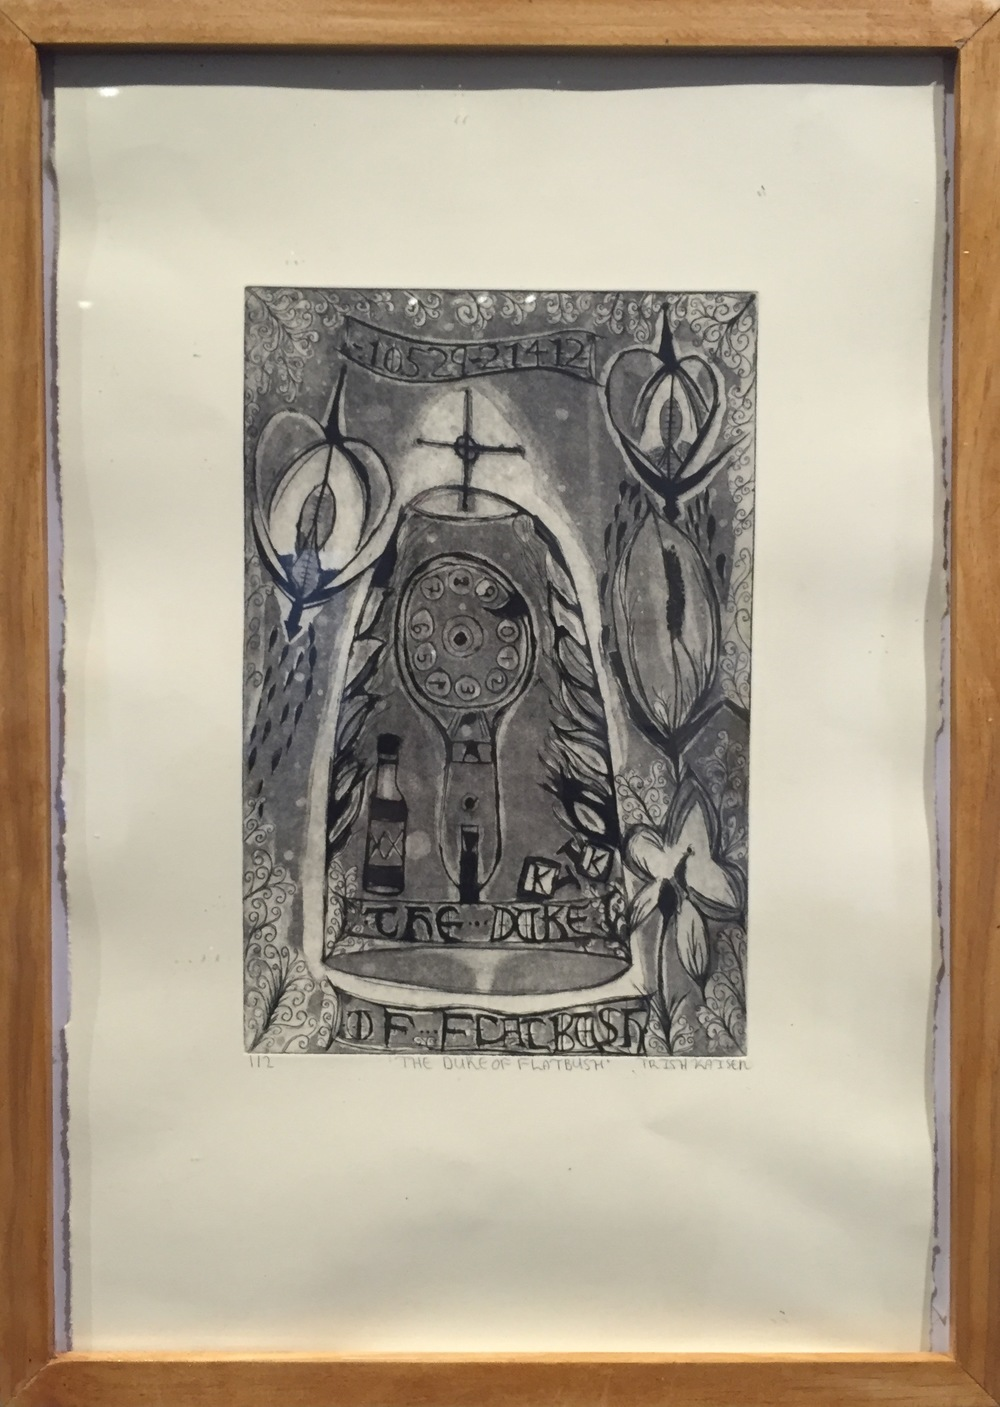 TRISH KAISER The Duke of Flatbush etching, aquatint